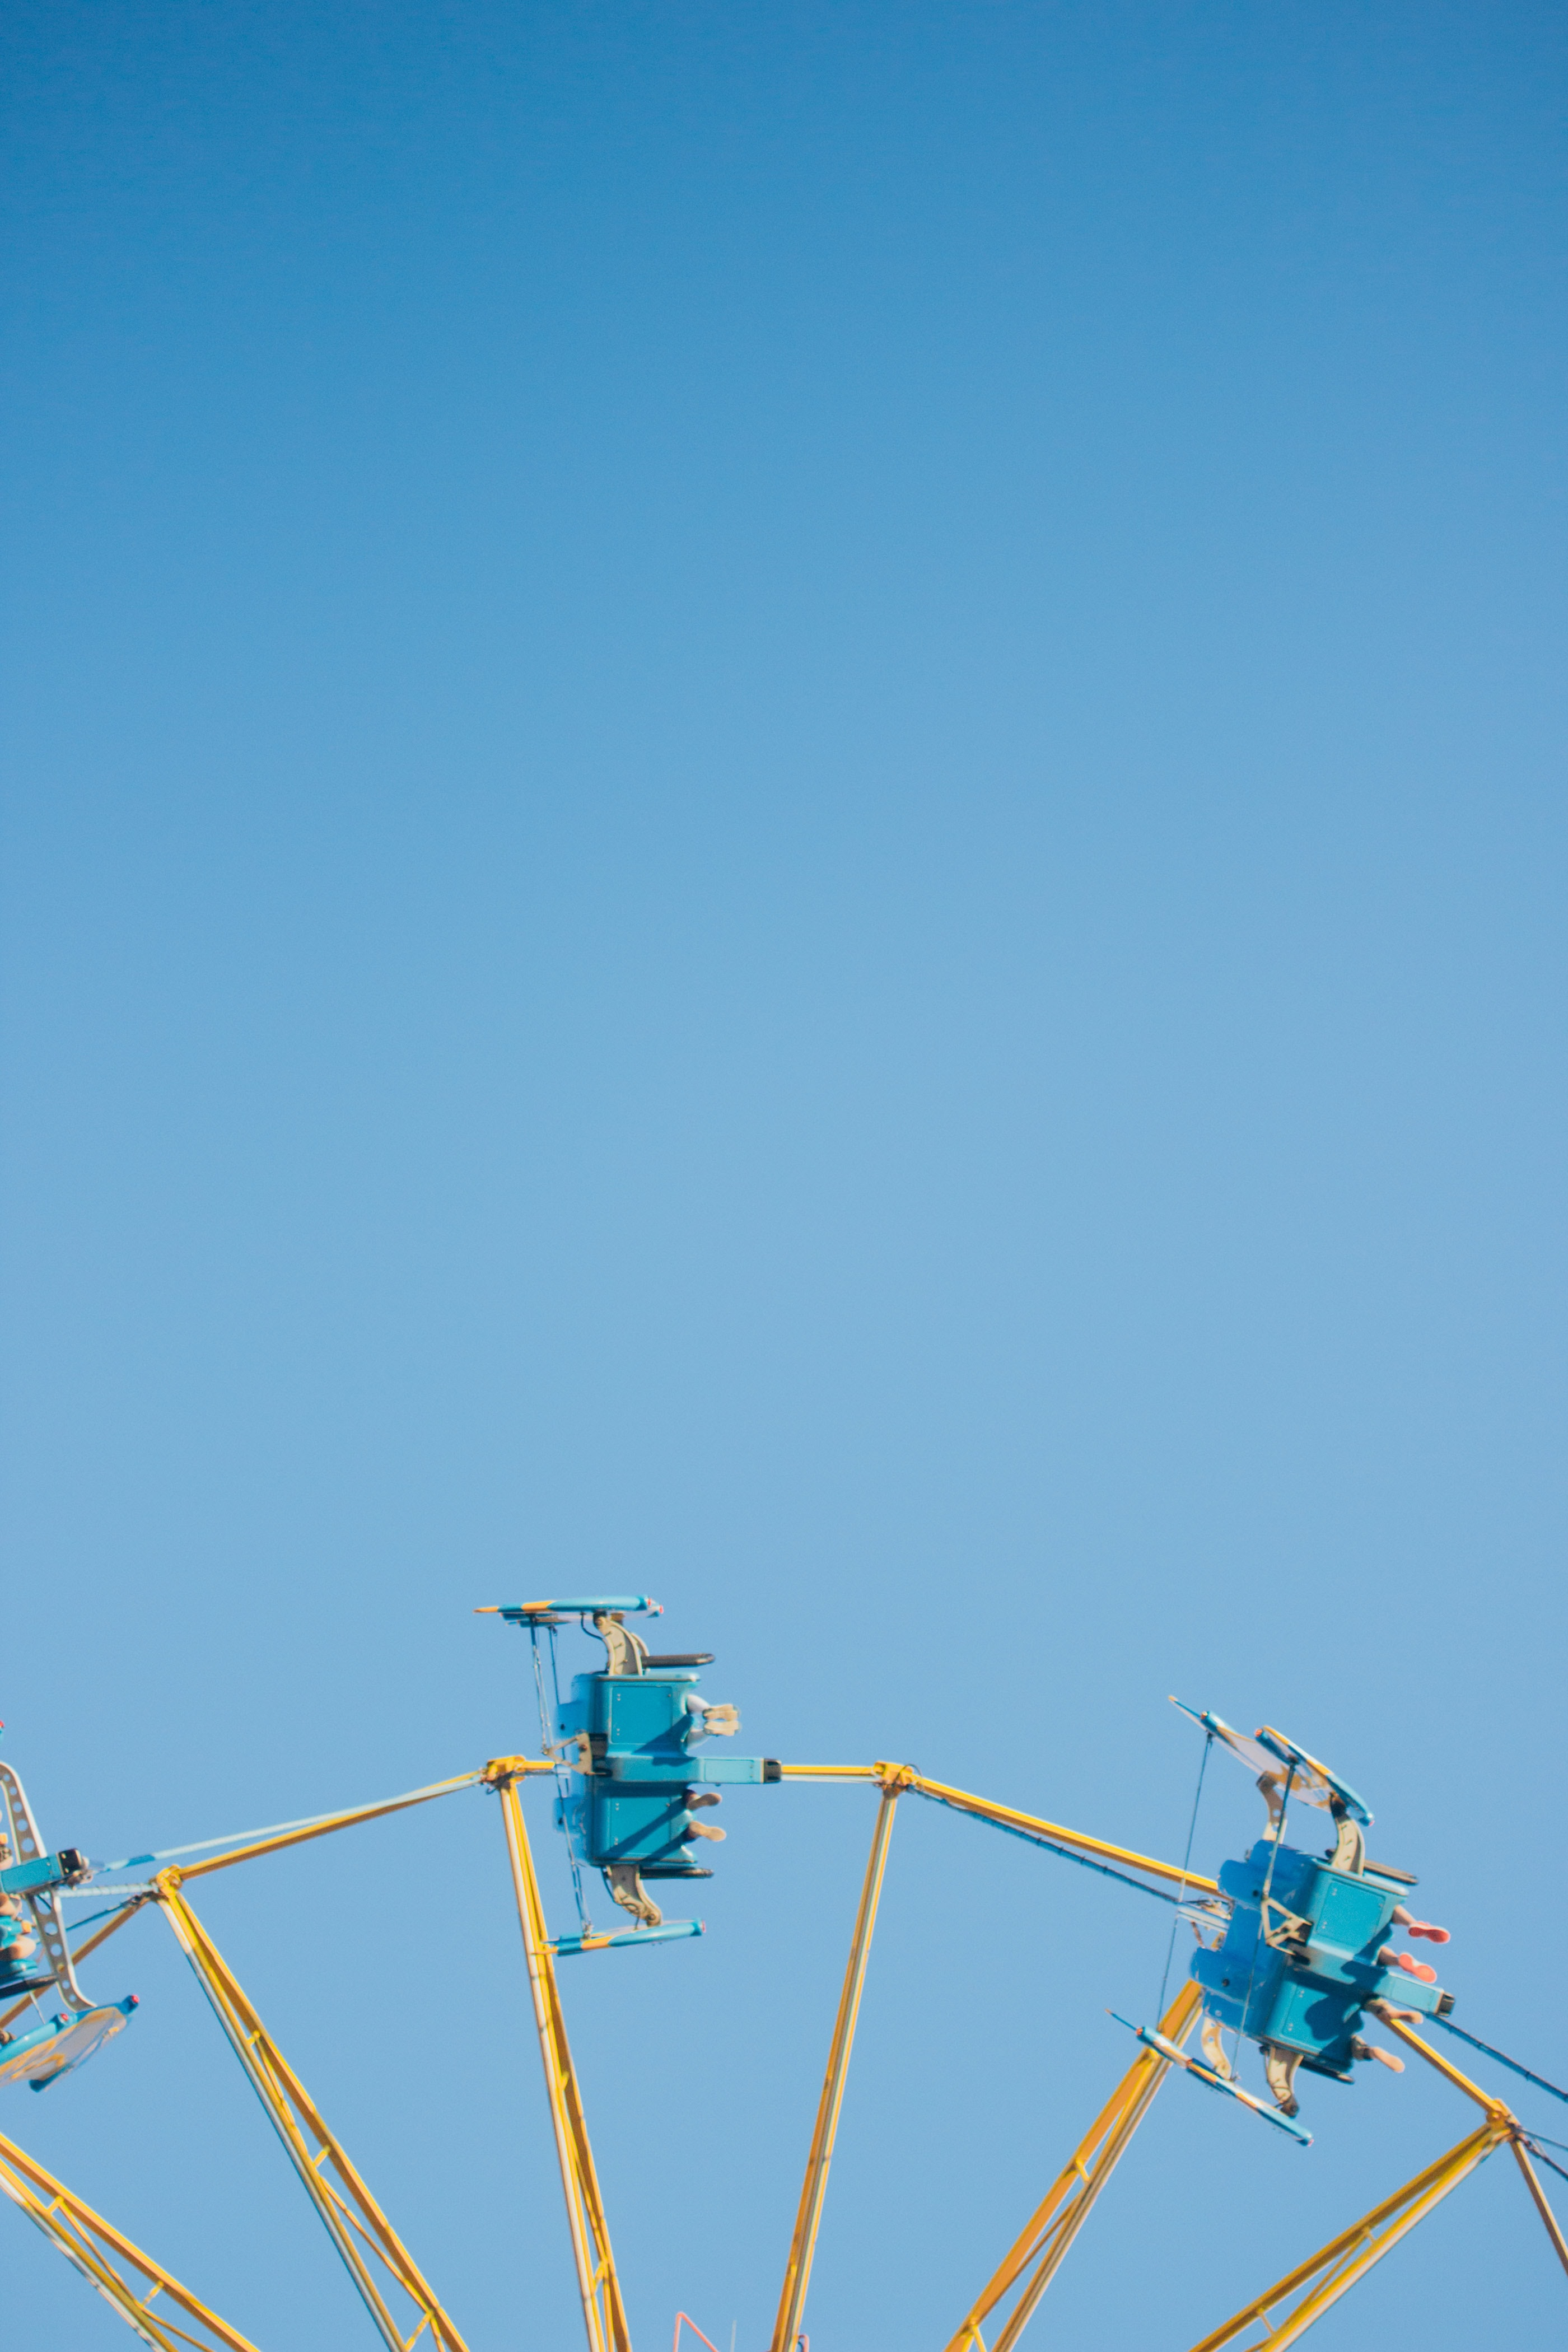 blue and yellow amusement park ride